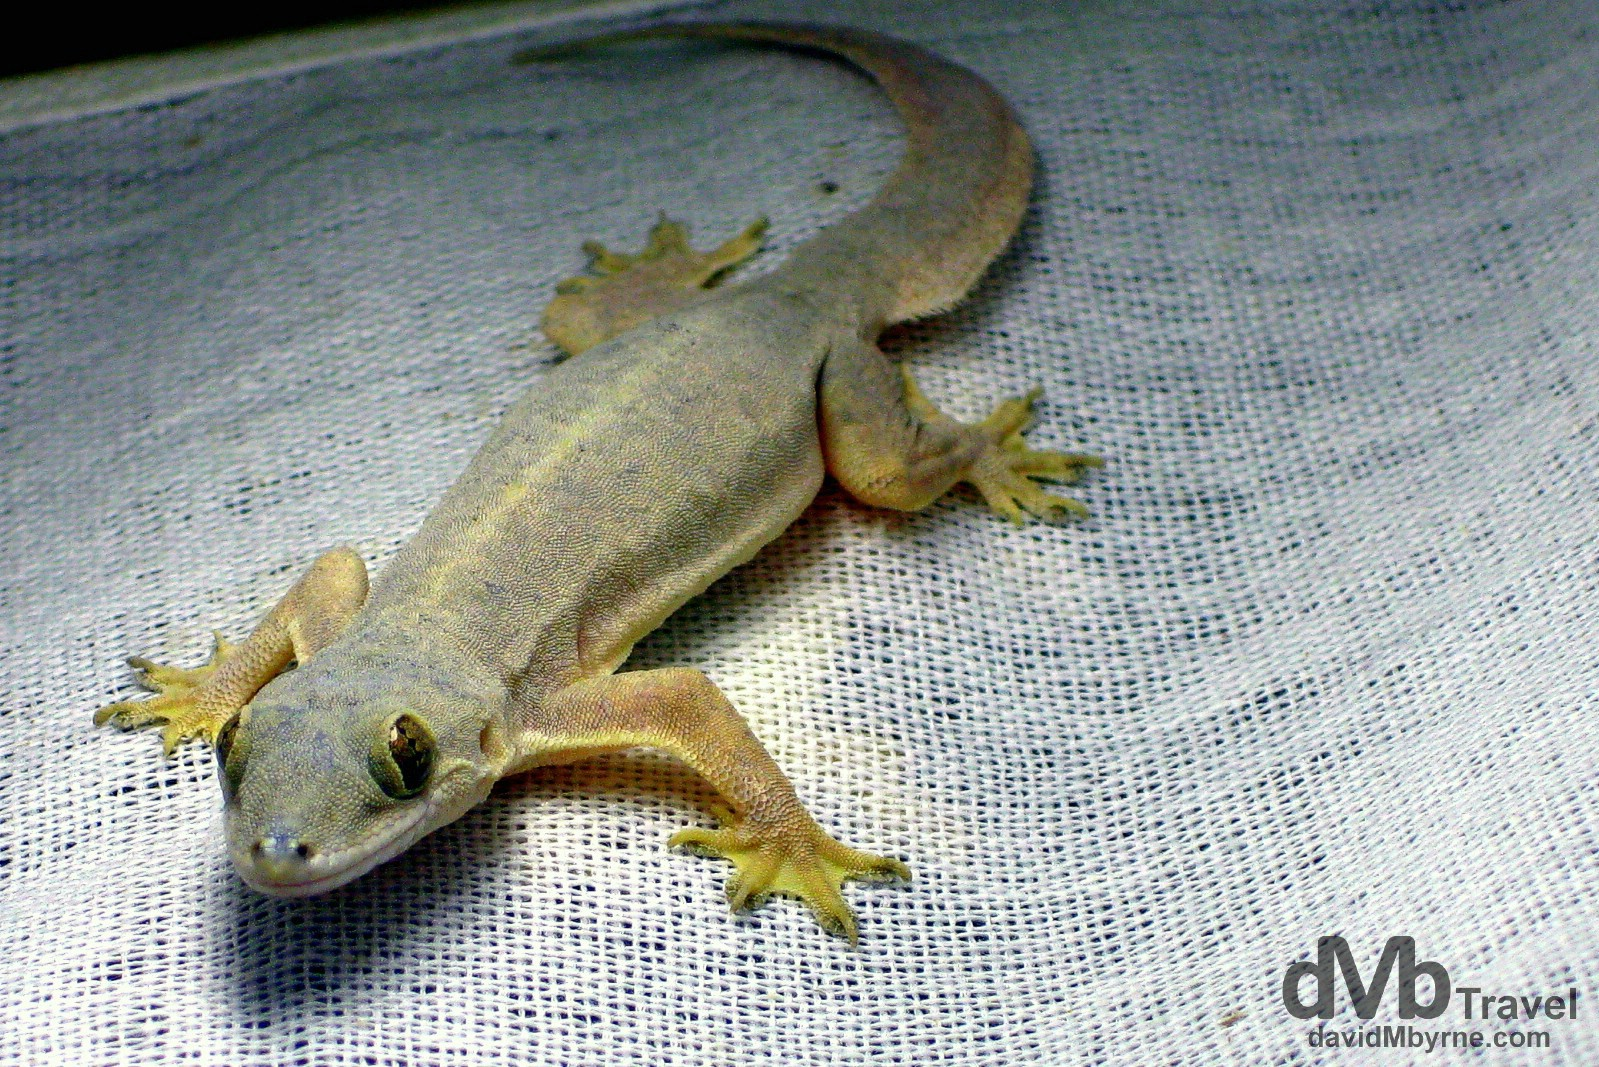 My then 3-month-old SLR was stolen on my first full day on the Philippine island of Boracay so for the rest of my time on the holiday island found myself using my IXUS point-and-shoot, including here when photographing this cute little gecko on the inside of a lampshade. Boracay Island, Philippines. September 24th 2011.